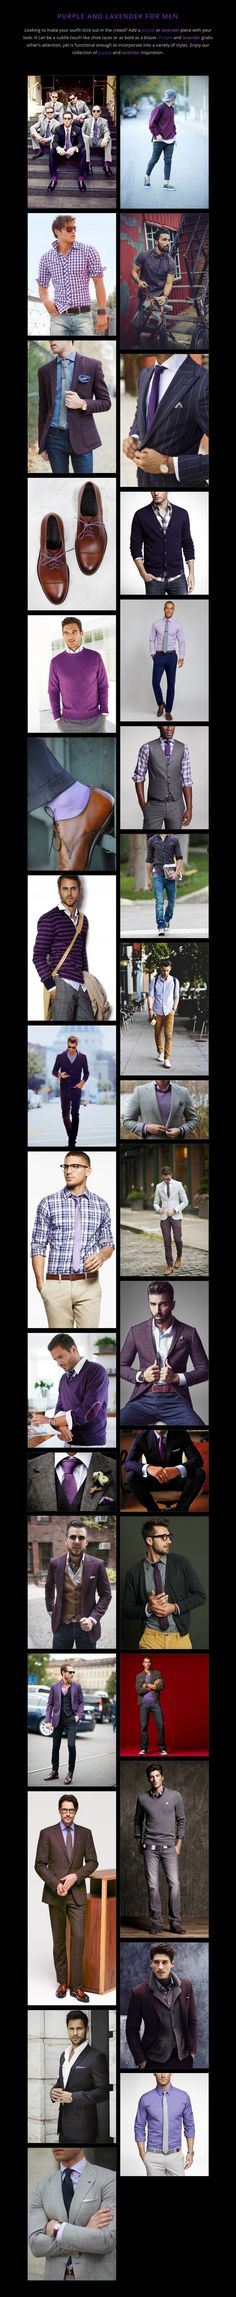 PURPLE AND LAVENDER FOR MEN